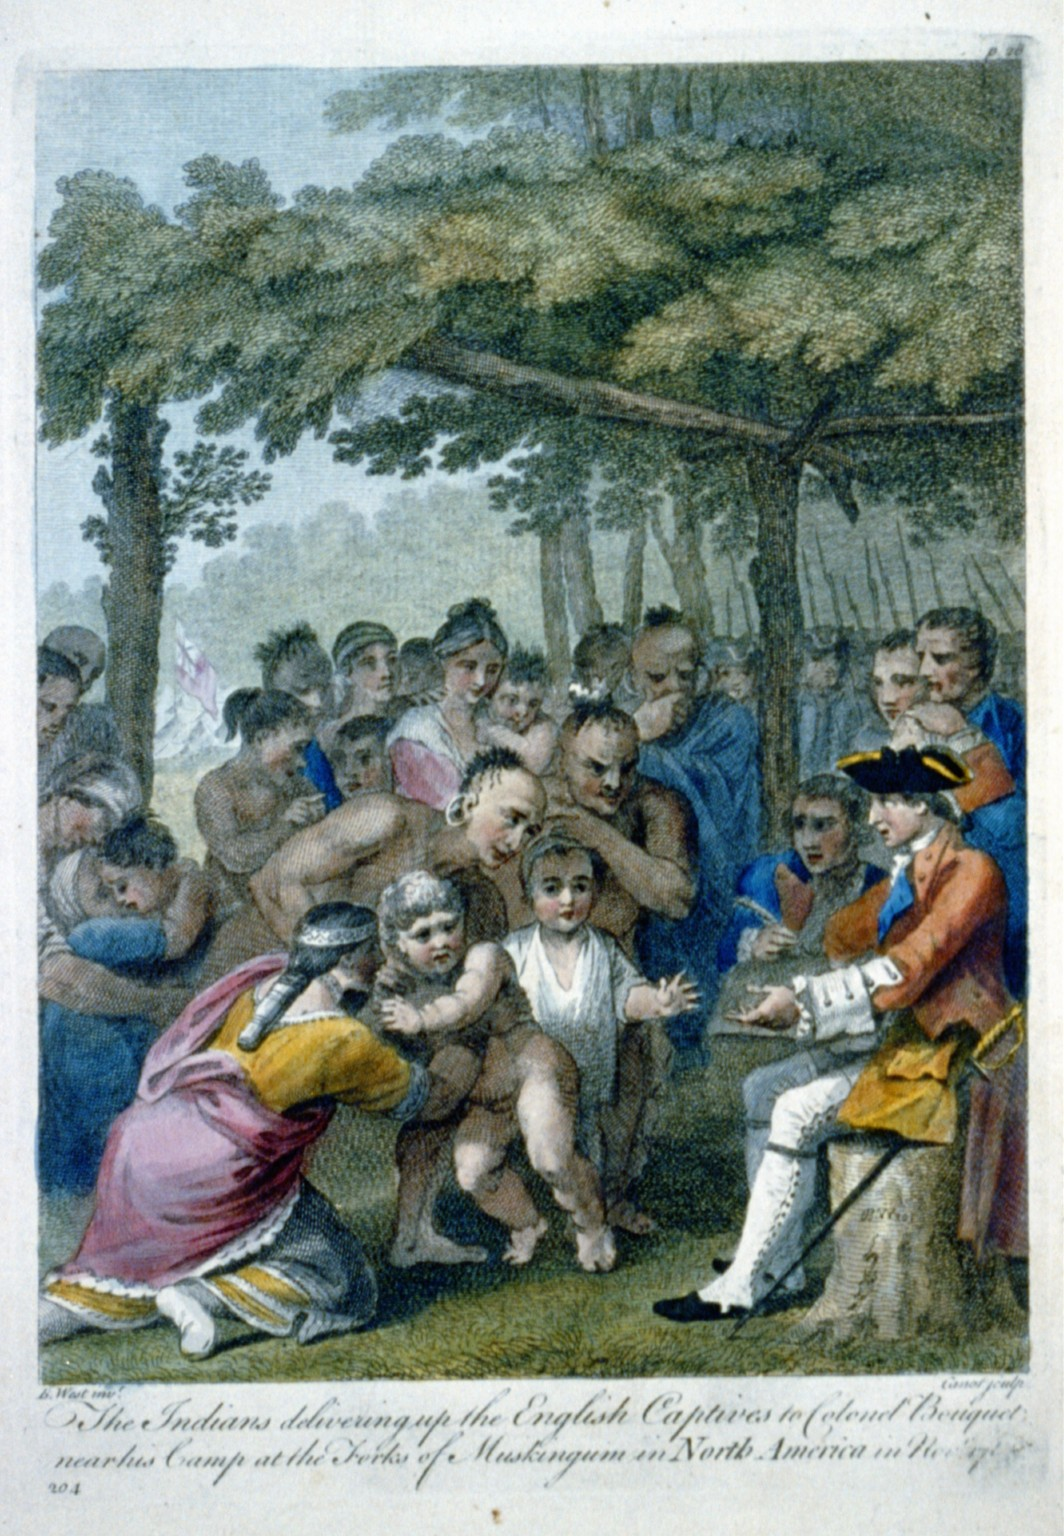 the culture of violence in america as depicted in the story family bashh